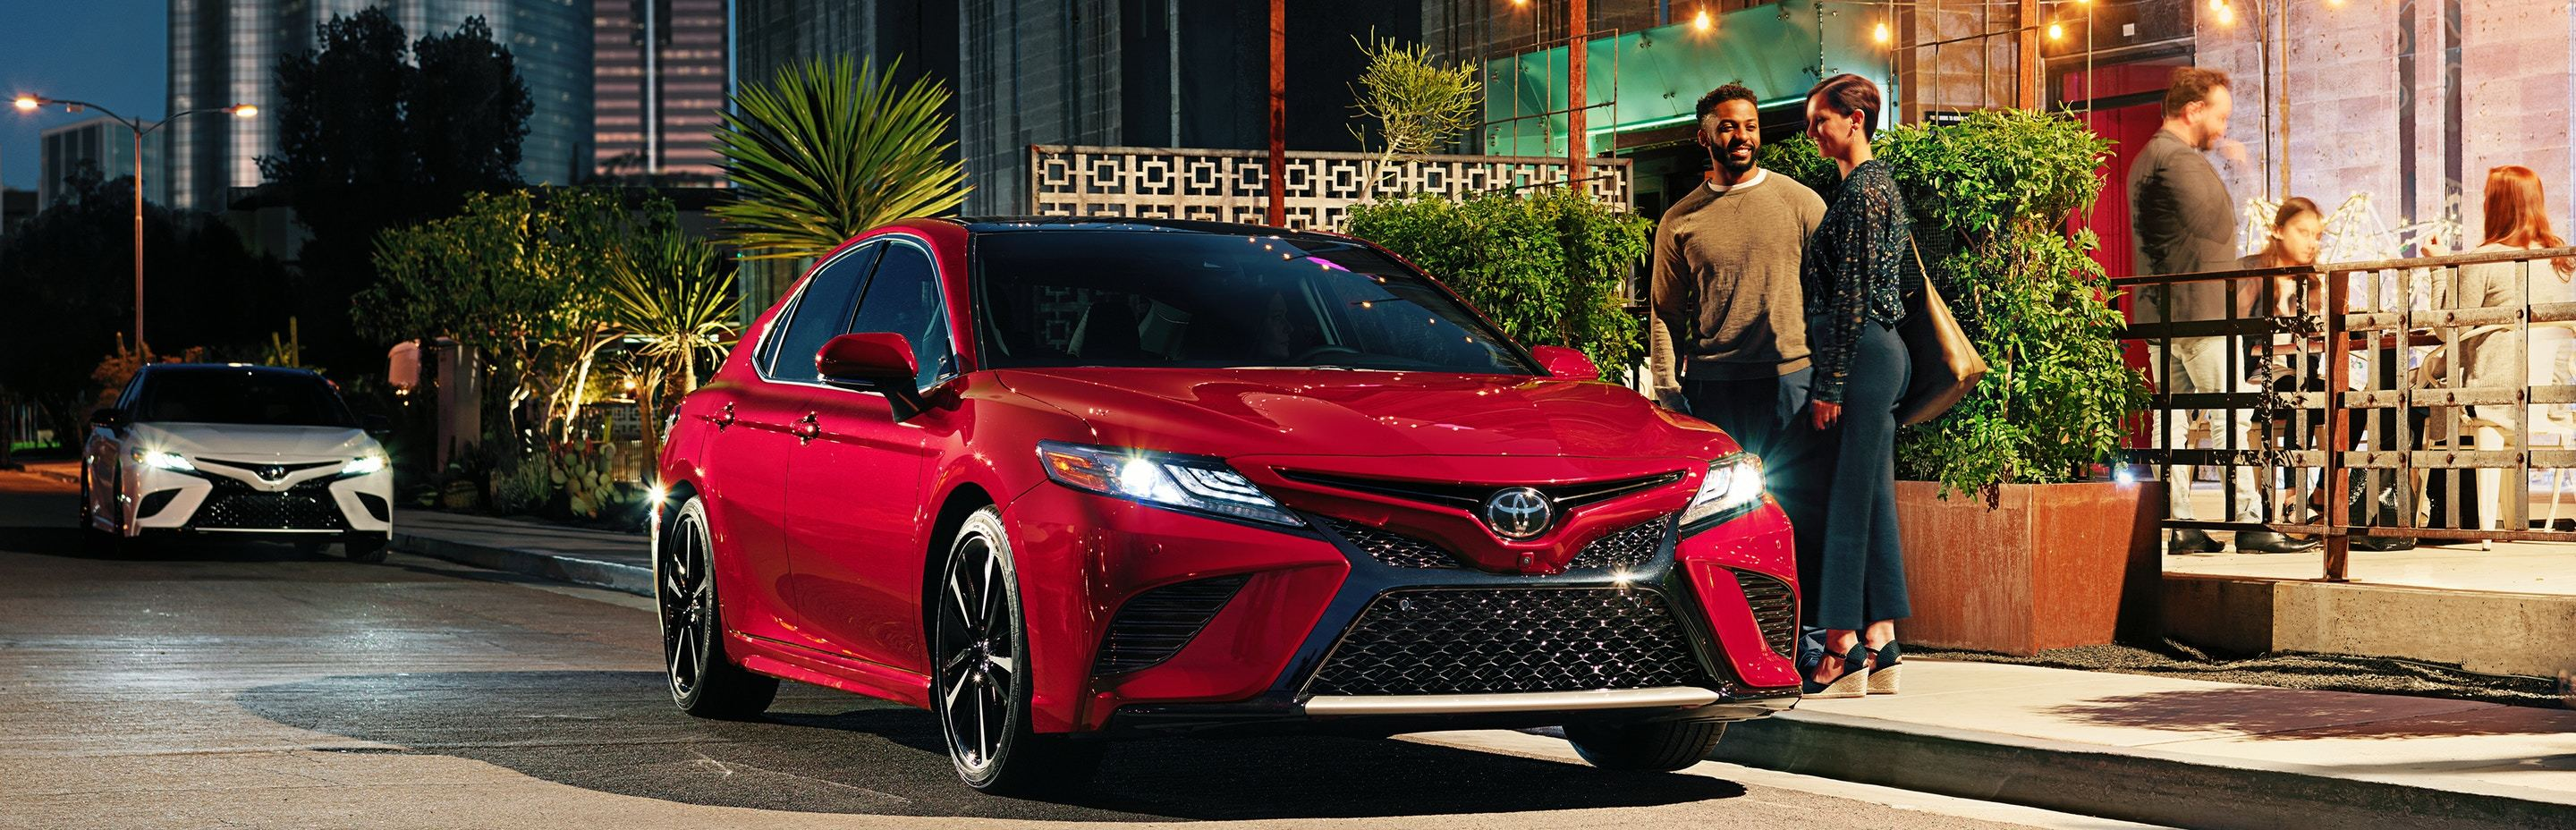 2020 Toyota Camry Lease near Lee's Summit, MO, 66086